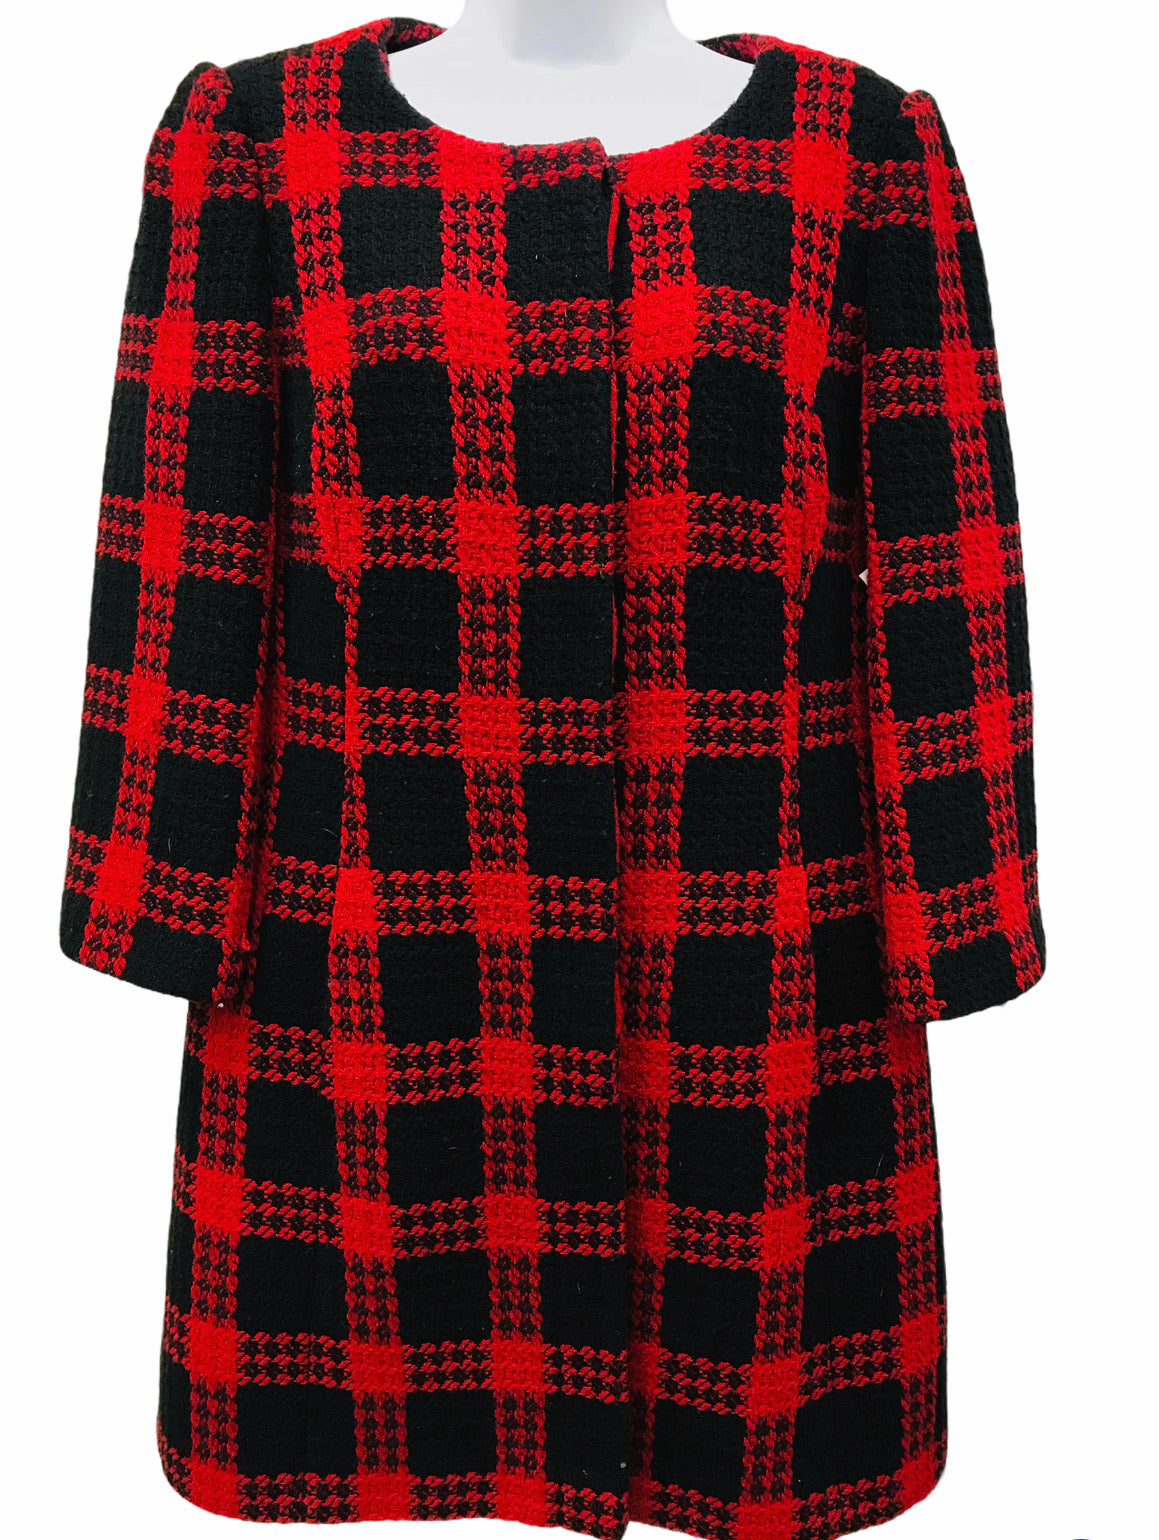 Ann Taylor Loft Coat - <UL> <LI>RED AND BLACK LOFT COAT</LI> <LI>SIZE 12</LI> <LI>STRUCTURED SHOULDER</LI> <LI>GENTLY WORN</LI> </UL>